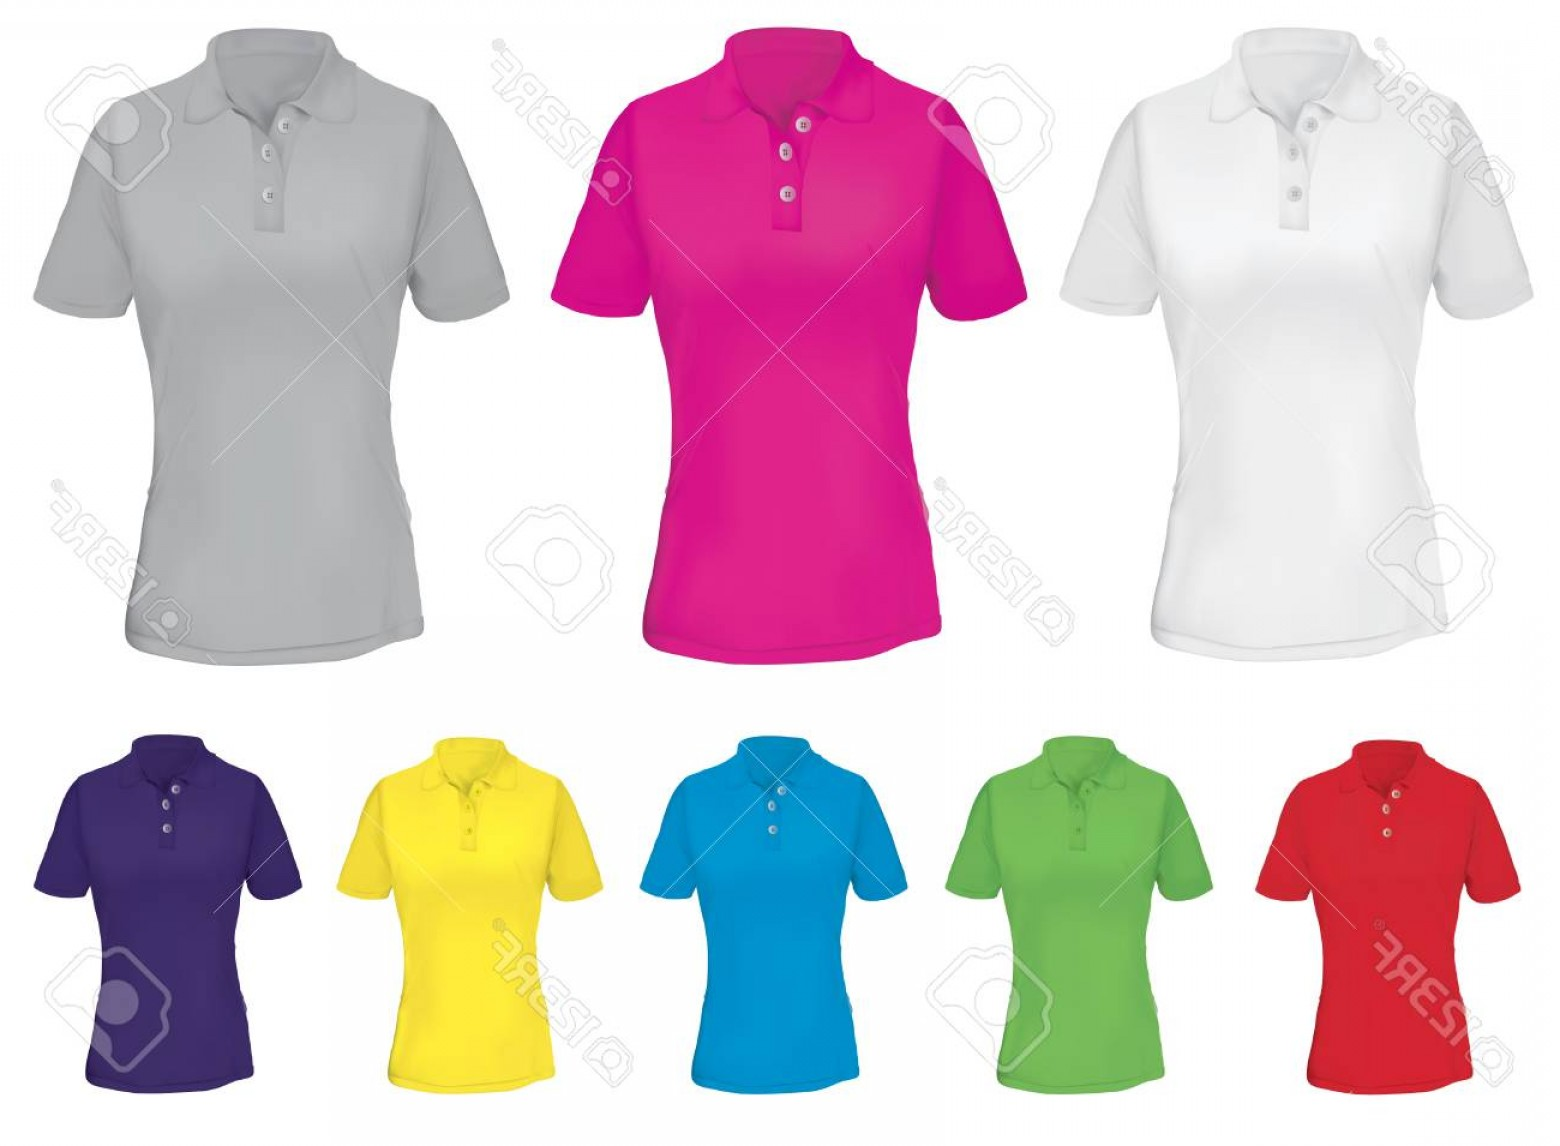 Female Polo Shirt Vector Template: Photostock Vector Polo Shirt Template For Woman In Many Colors